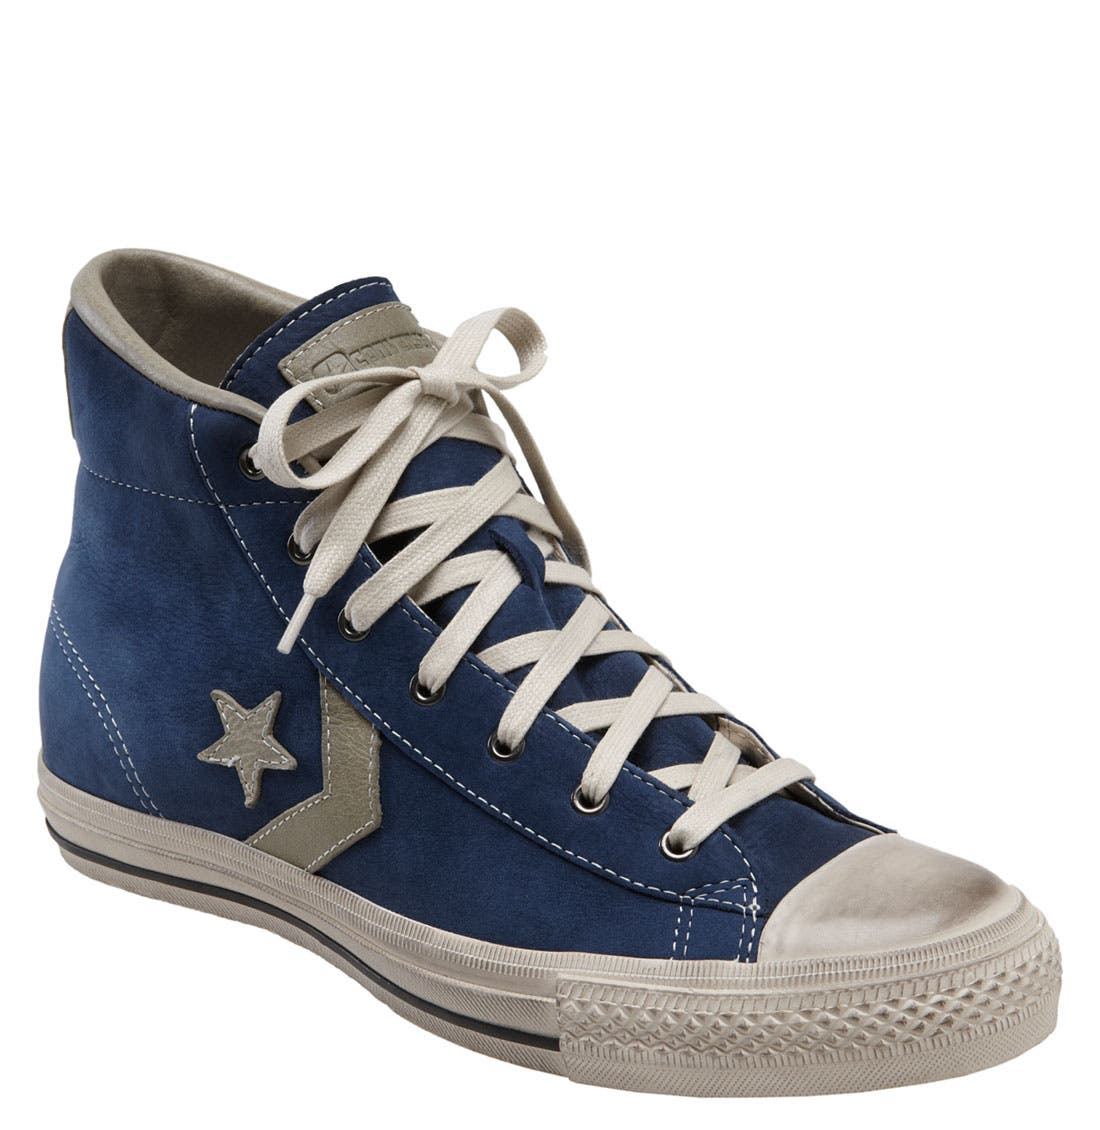 Alternate Image 1 Selected - Converse by John Varvatos 'Star Player Mid' Sneaker